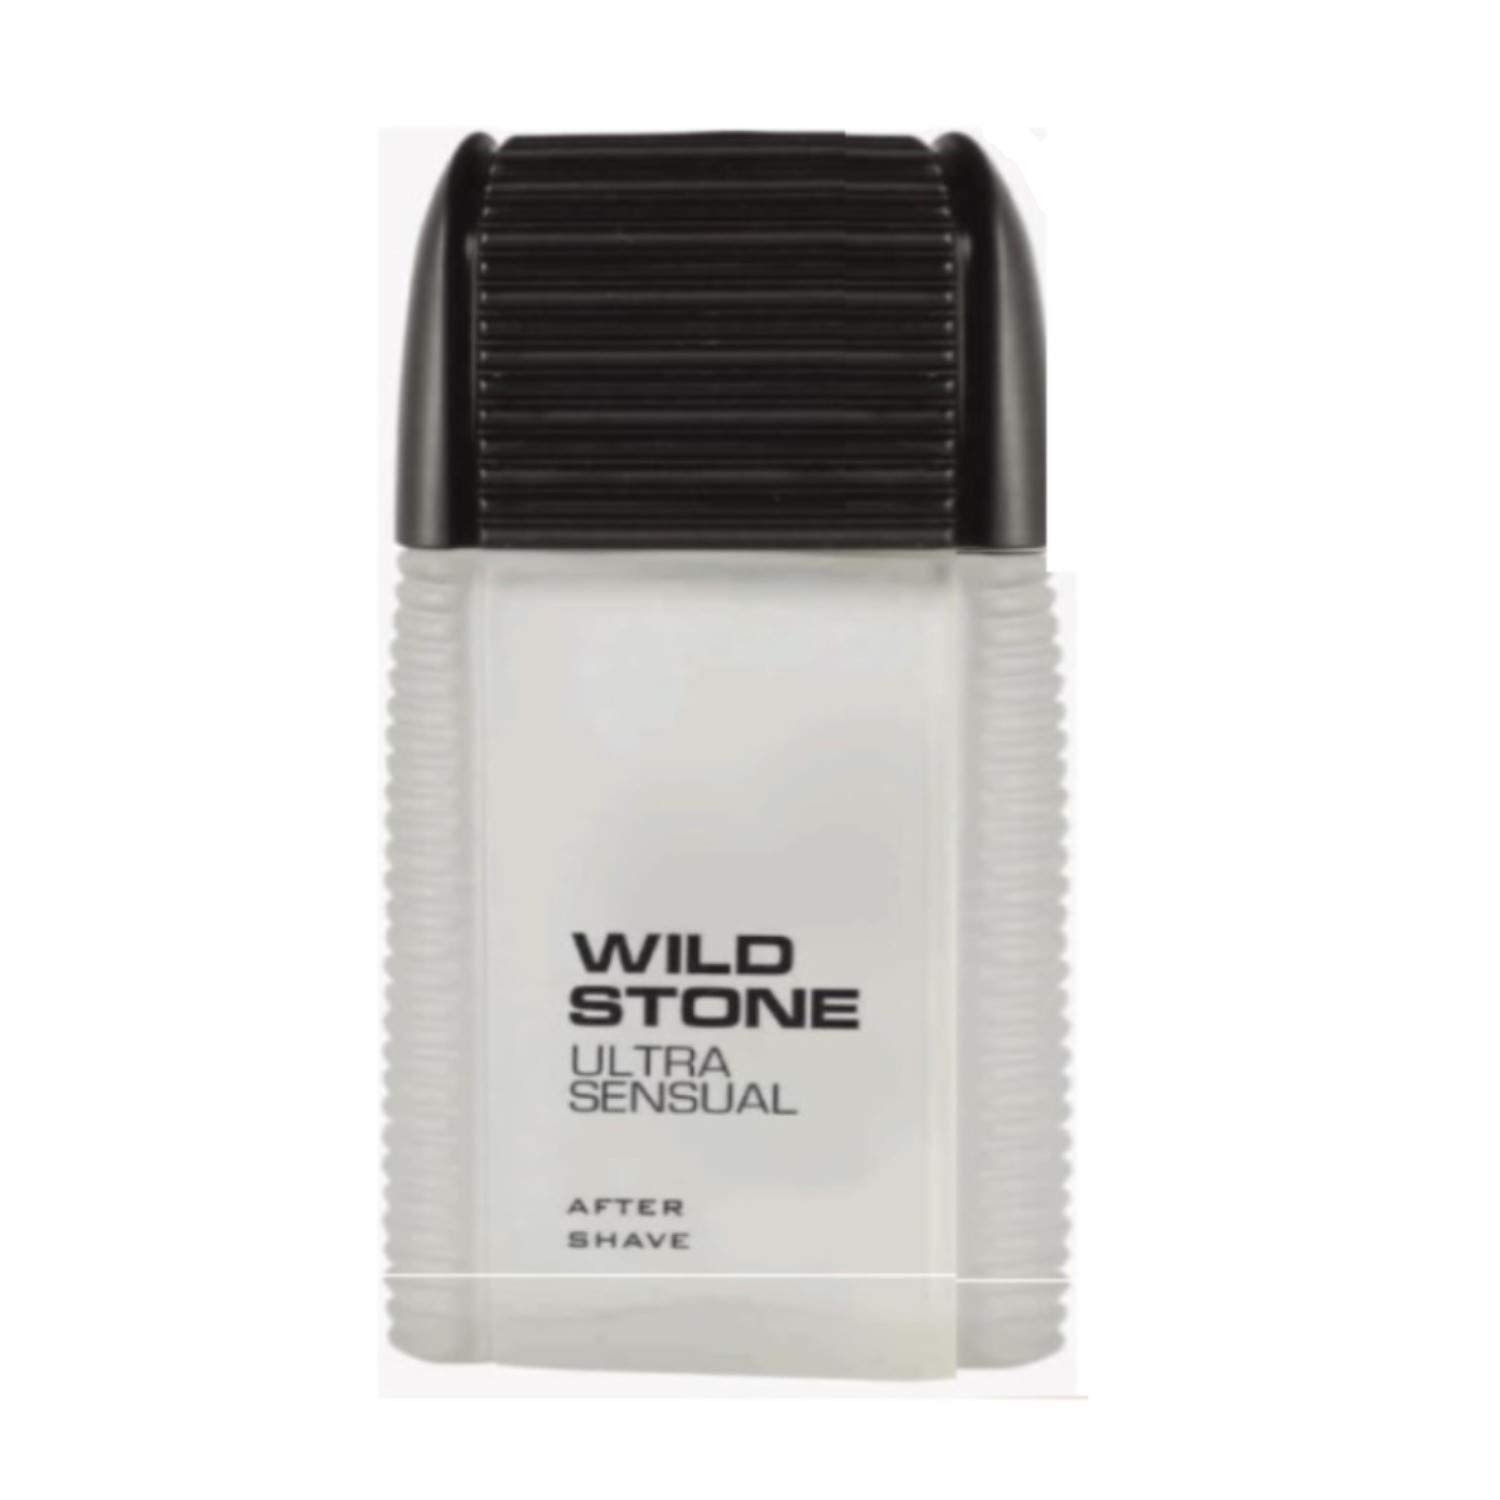 Wild Stone Ultra Sensual After Shave Lotion (100 ml)